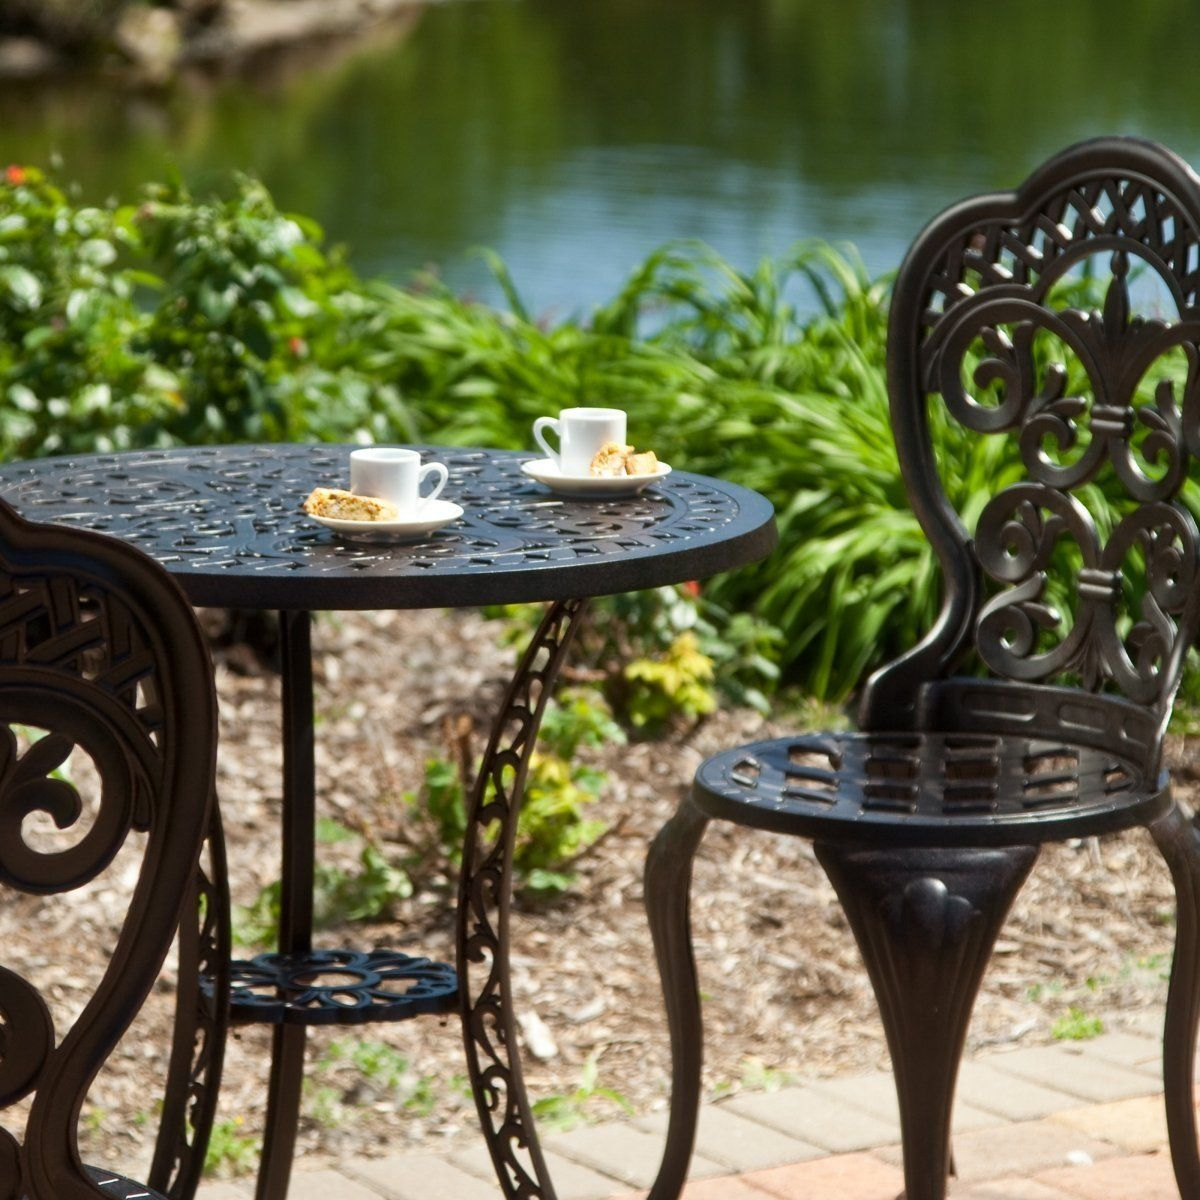 3 Piece Cast Aluminum Outdoor Bistro Set With Table And 2 Chairs A